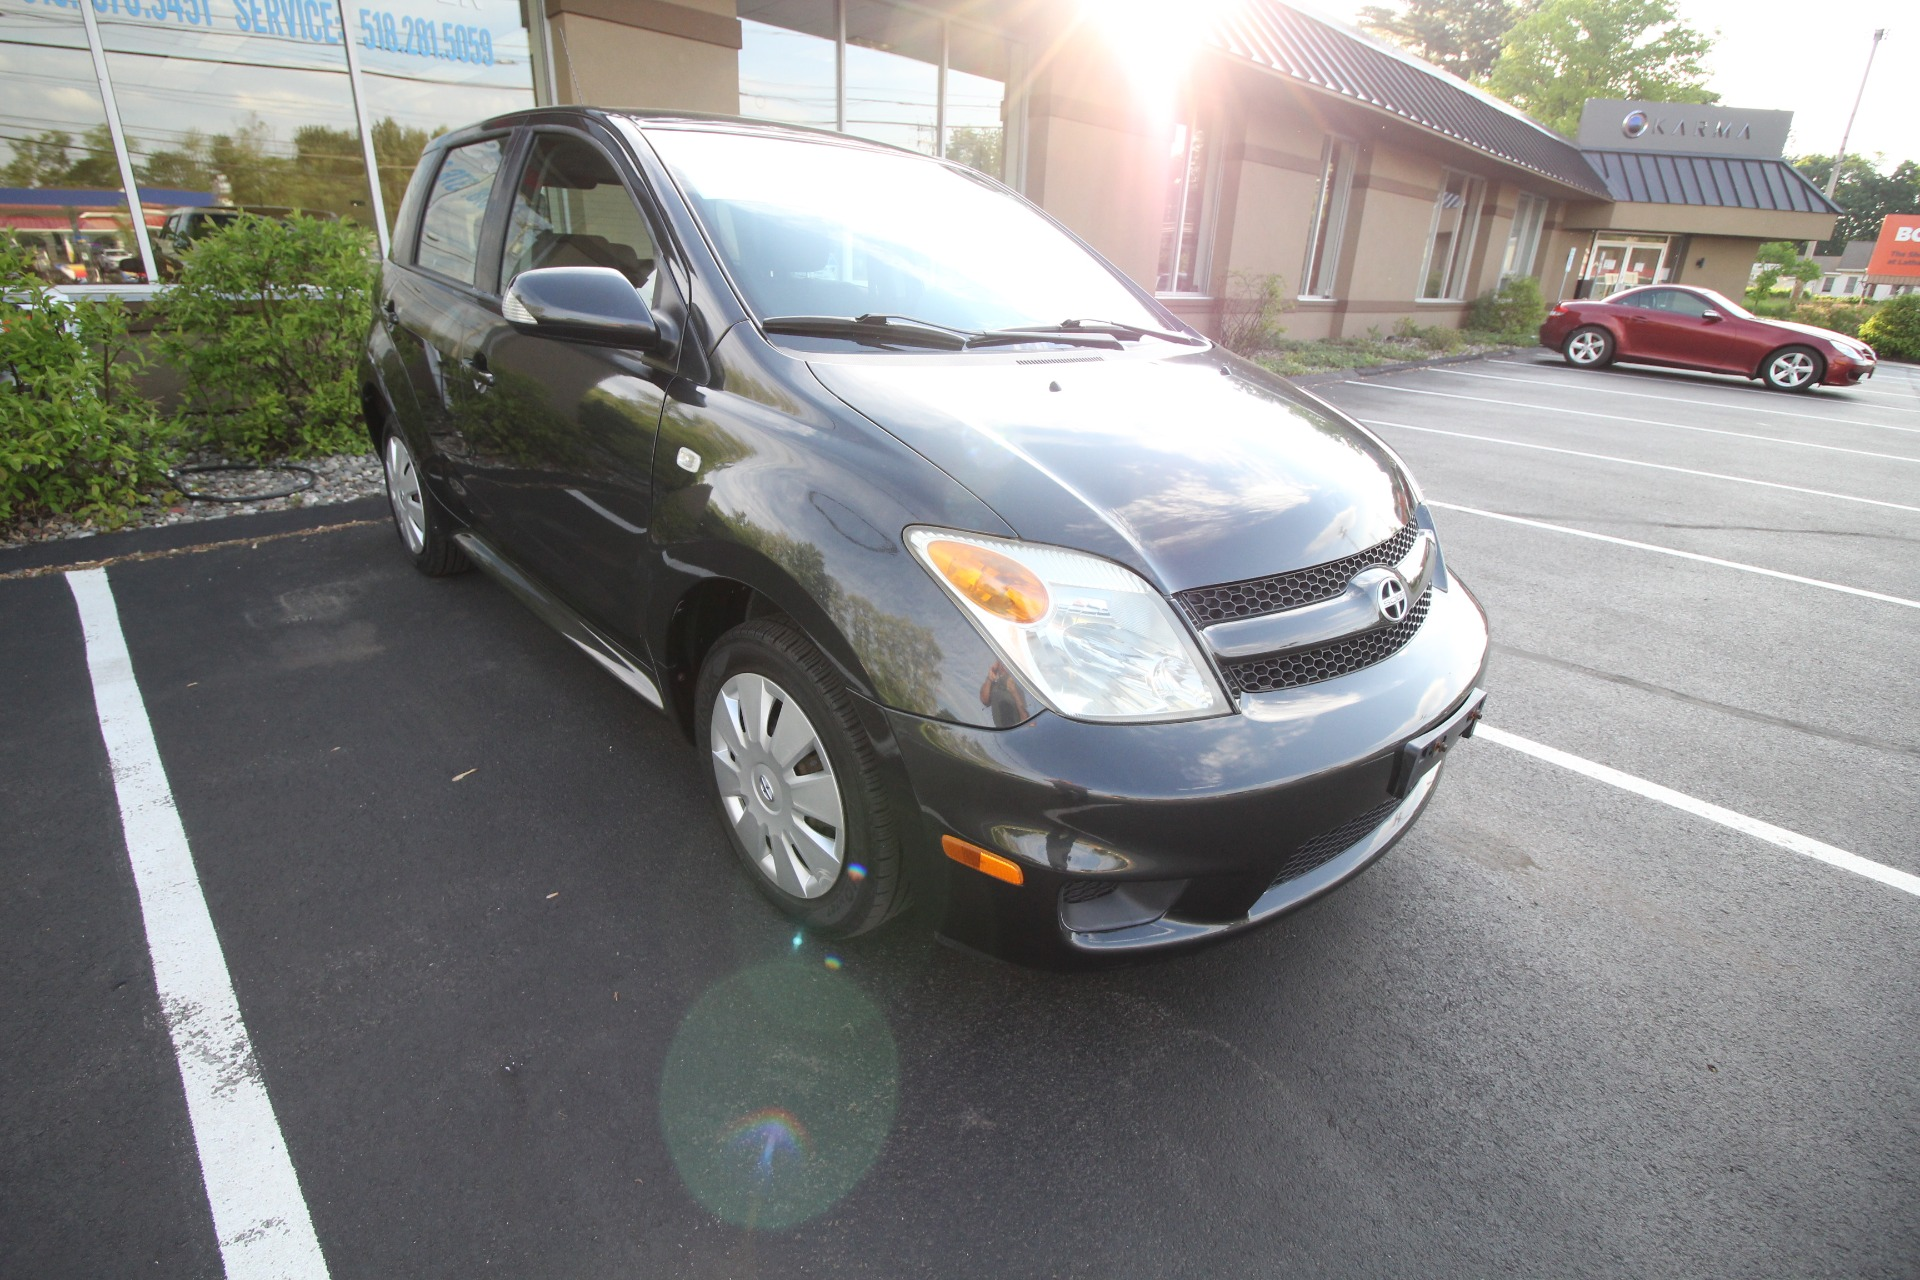 Used 2006 Scion xA Hatchback 1 OWNER NEW CAR TRADE WITH US LOW MILES | Albany, NY